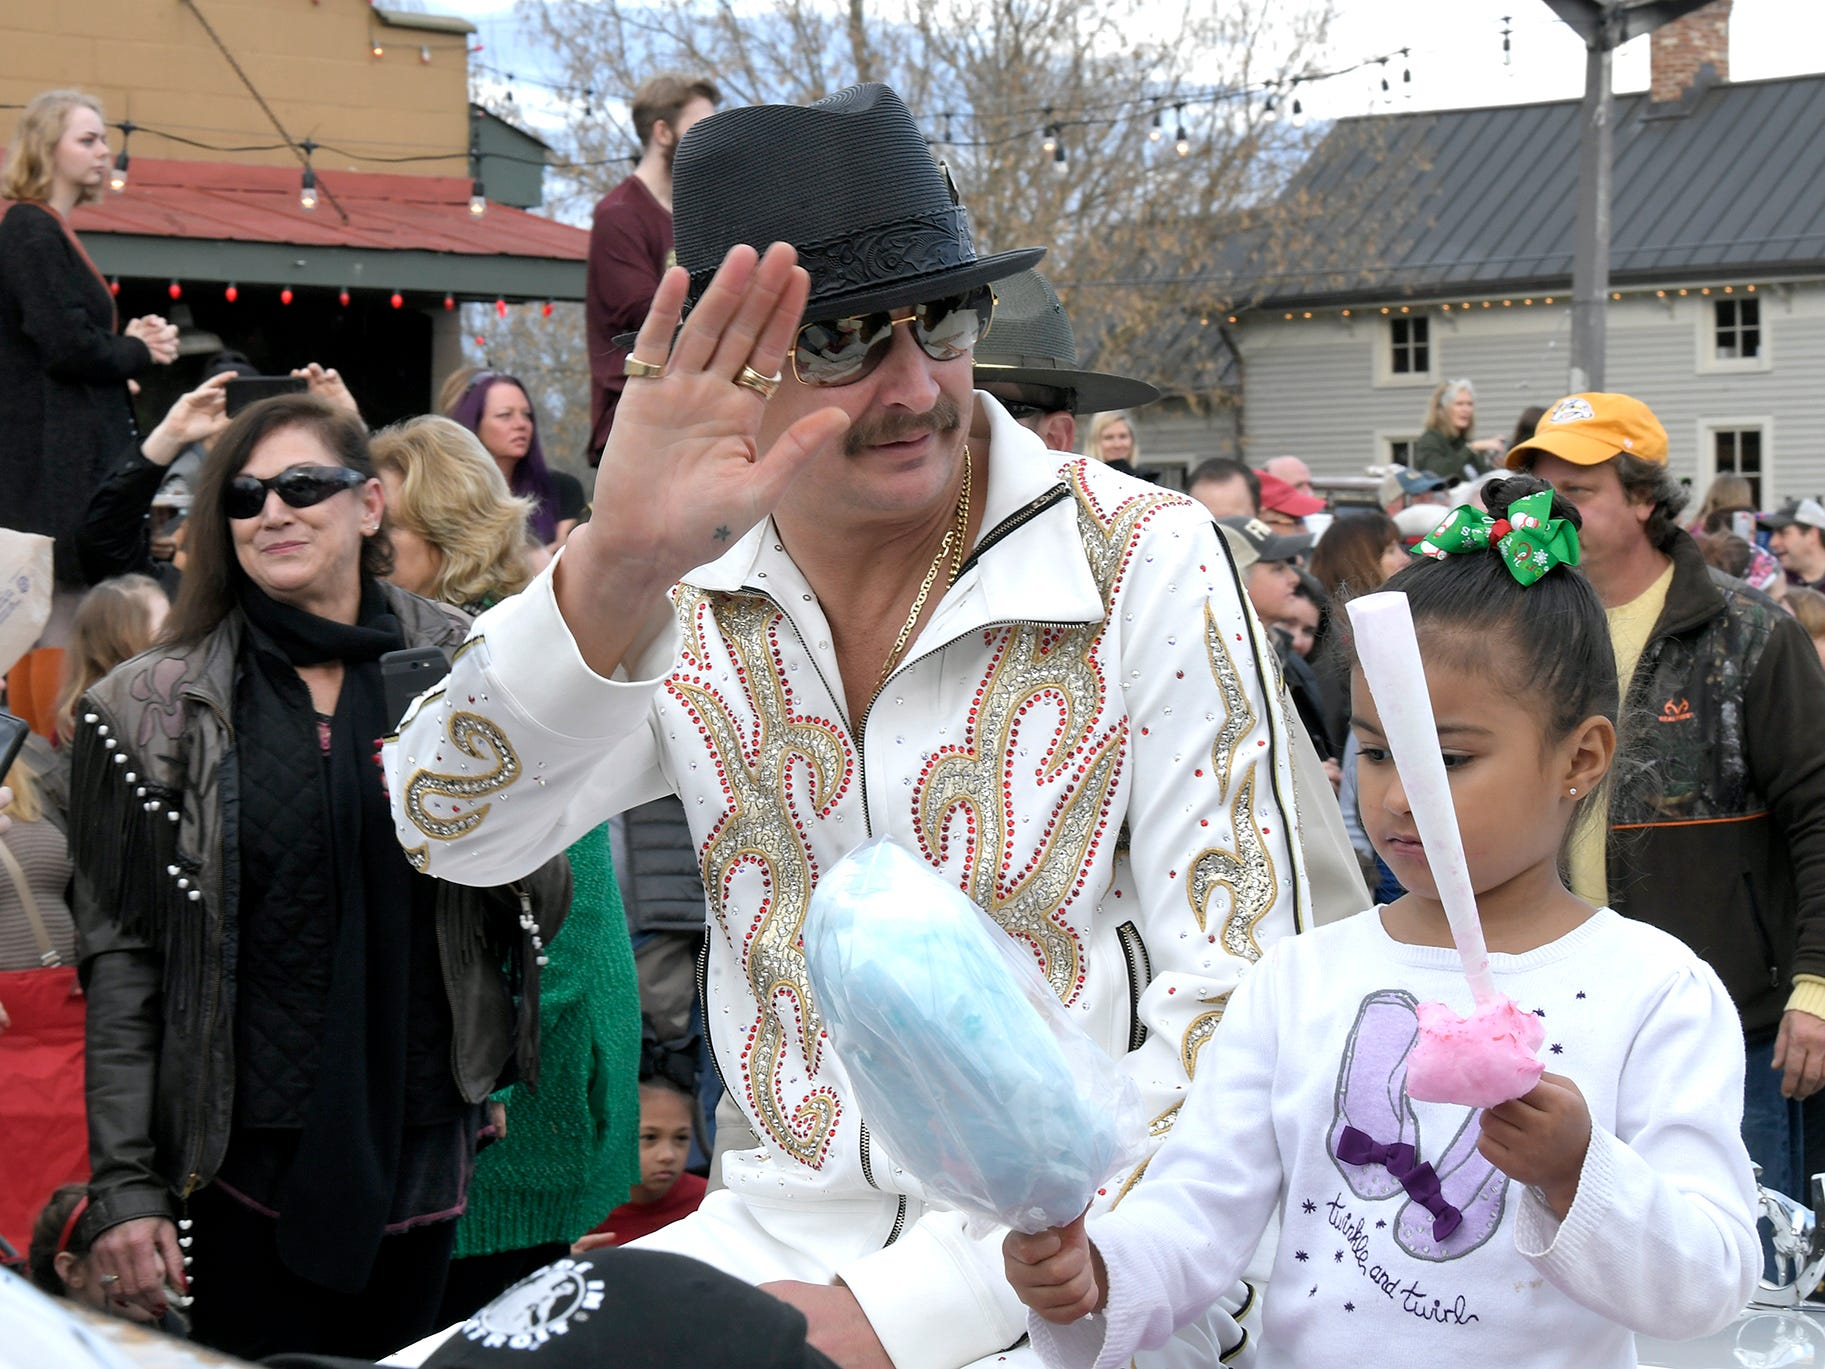 Kid Rock waves to the crowd as he rides in the Leiper's Fork Christmas Parade on Saturday, Dec. 15, 2018.